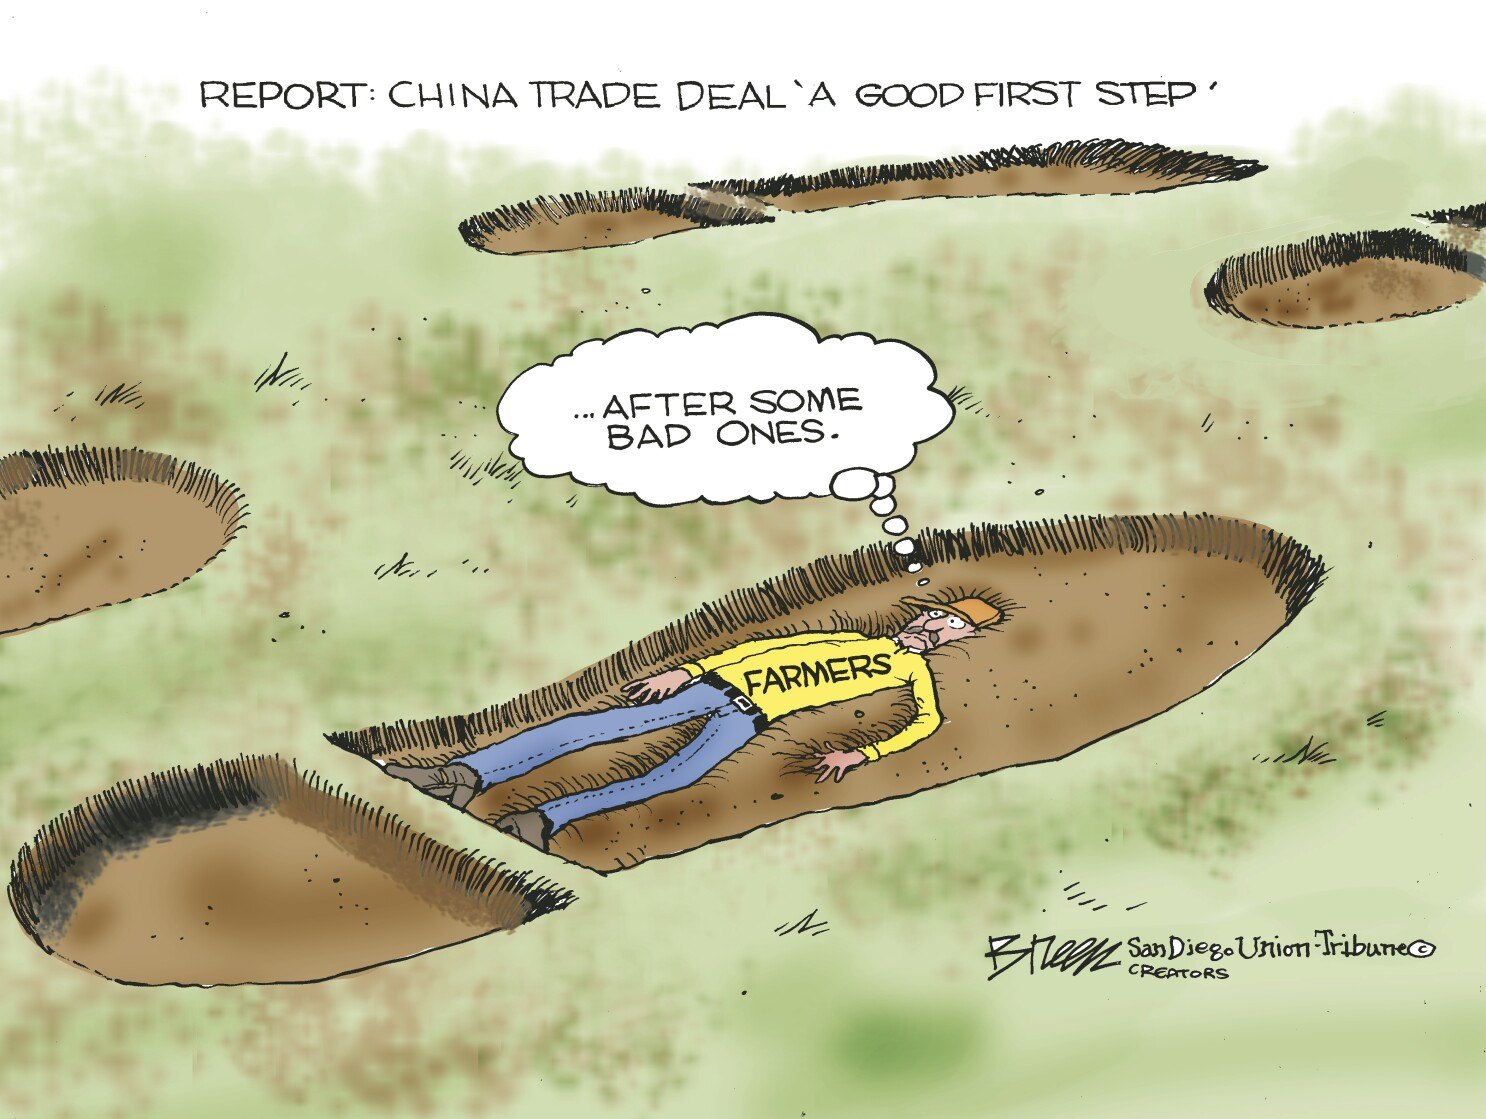 U.S. and China sign 'Phase One' of trade agreement